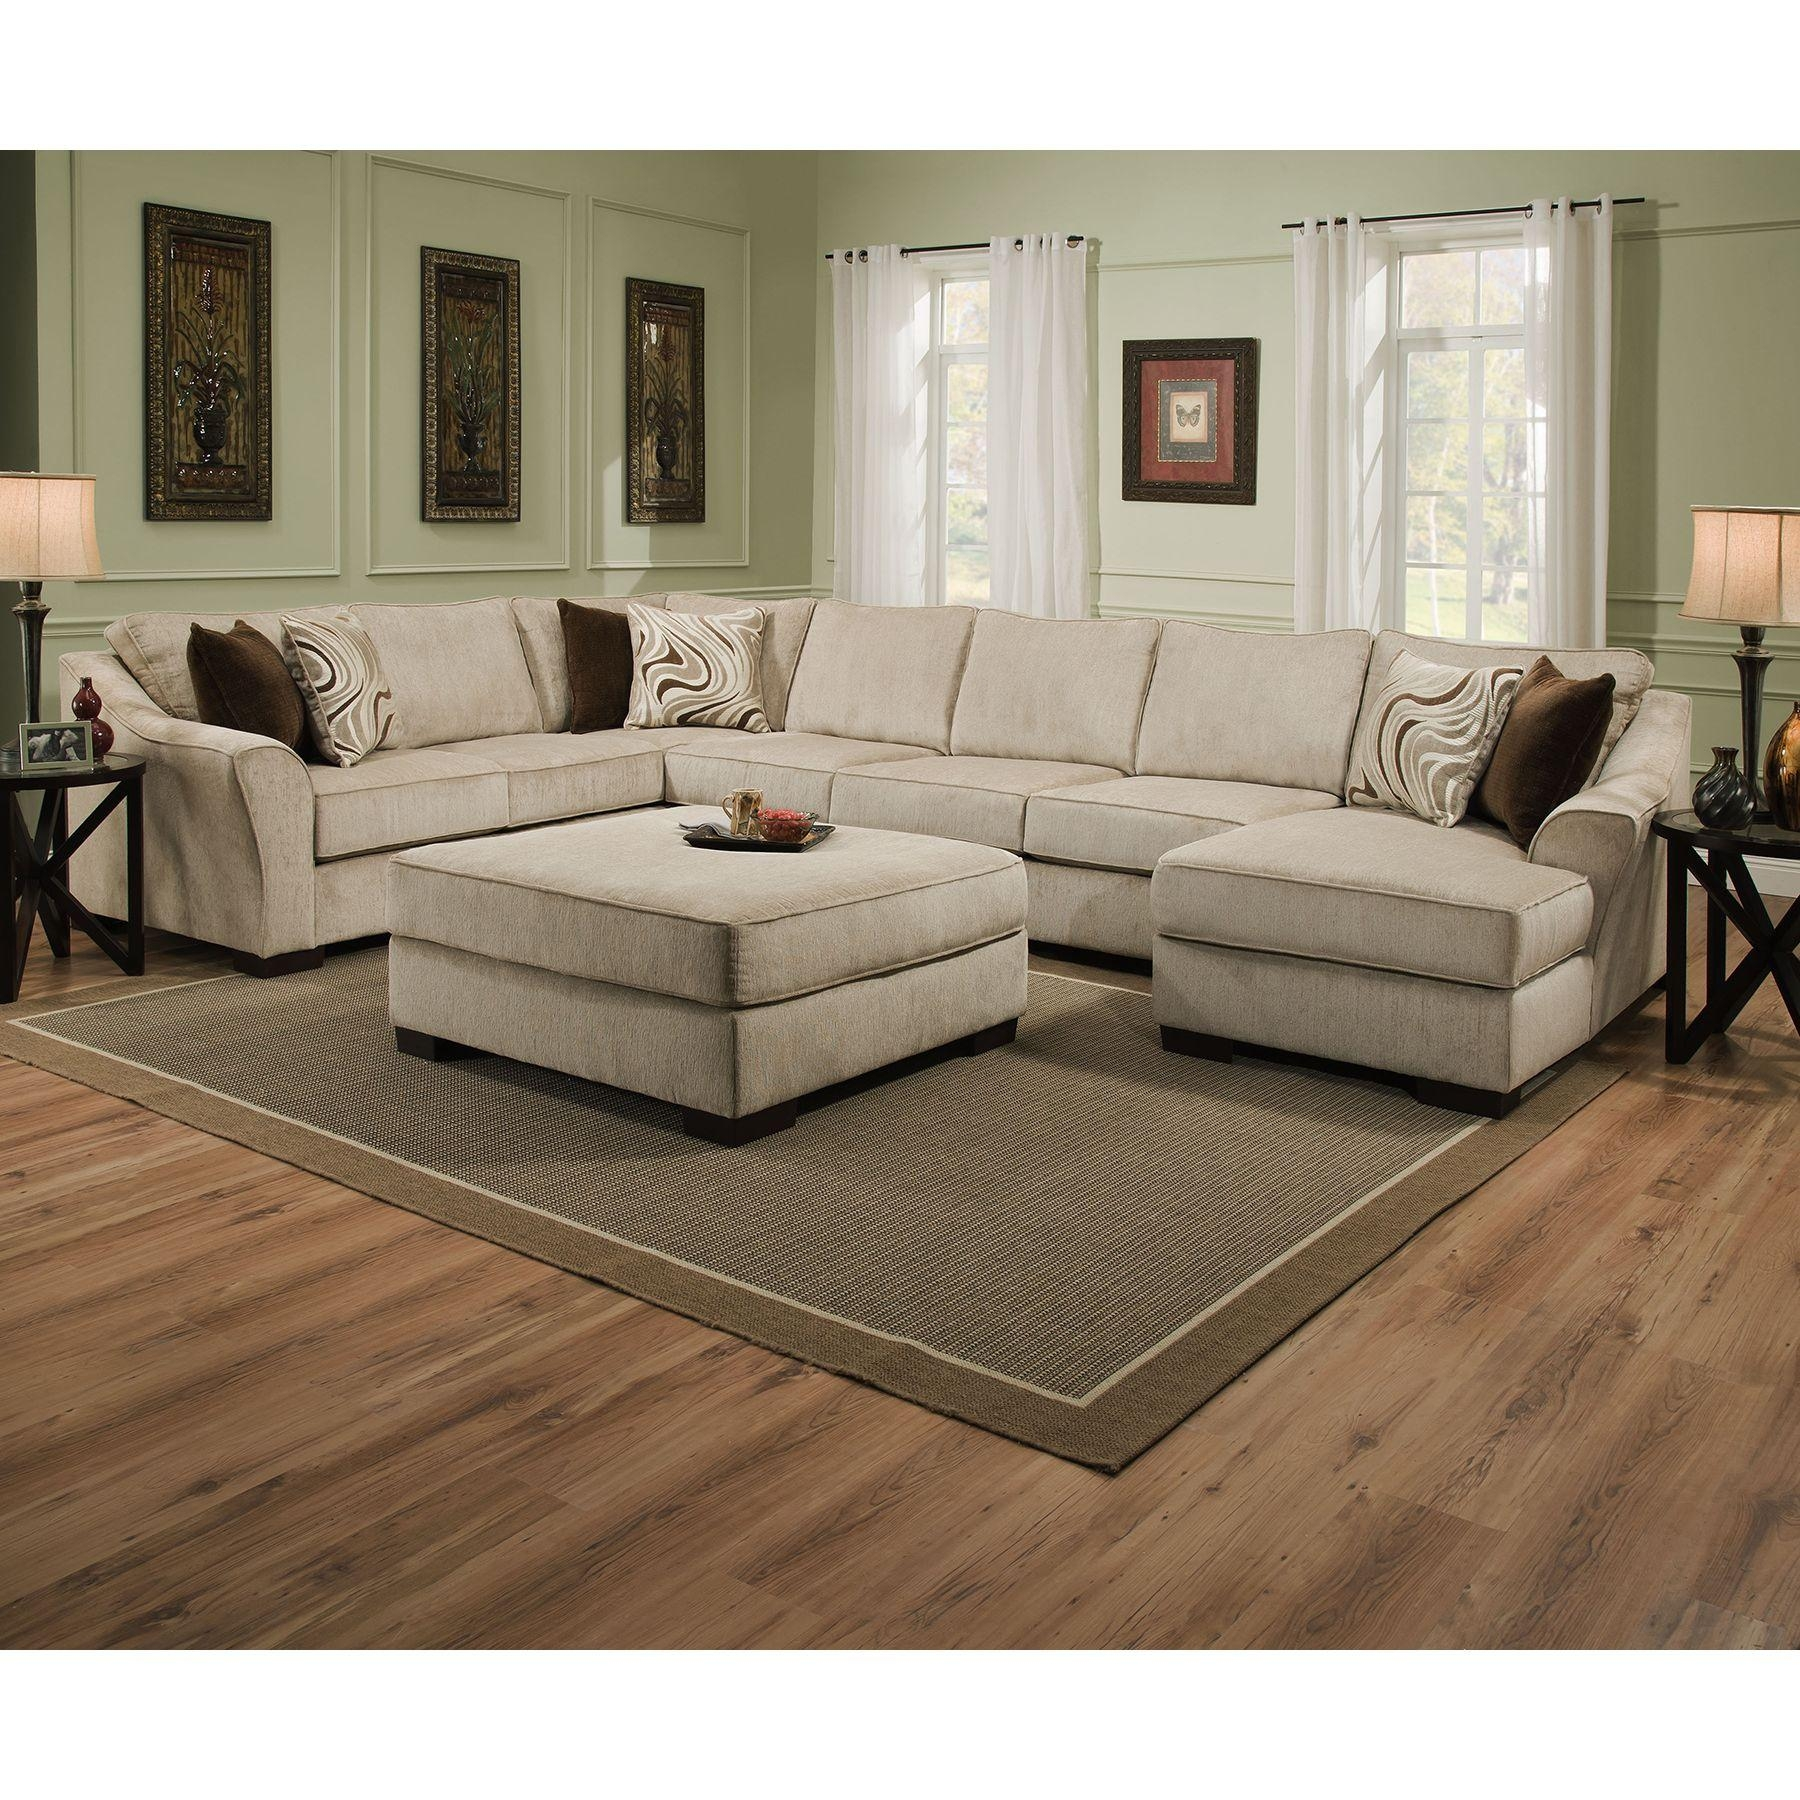 Big Couch 20 Best Large Comfortable Sectional Sofas Sofa Ideas